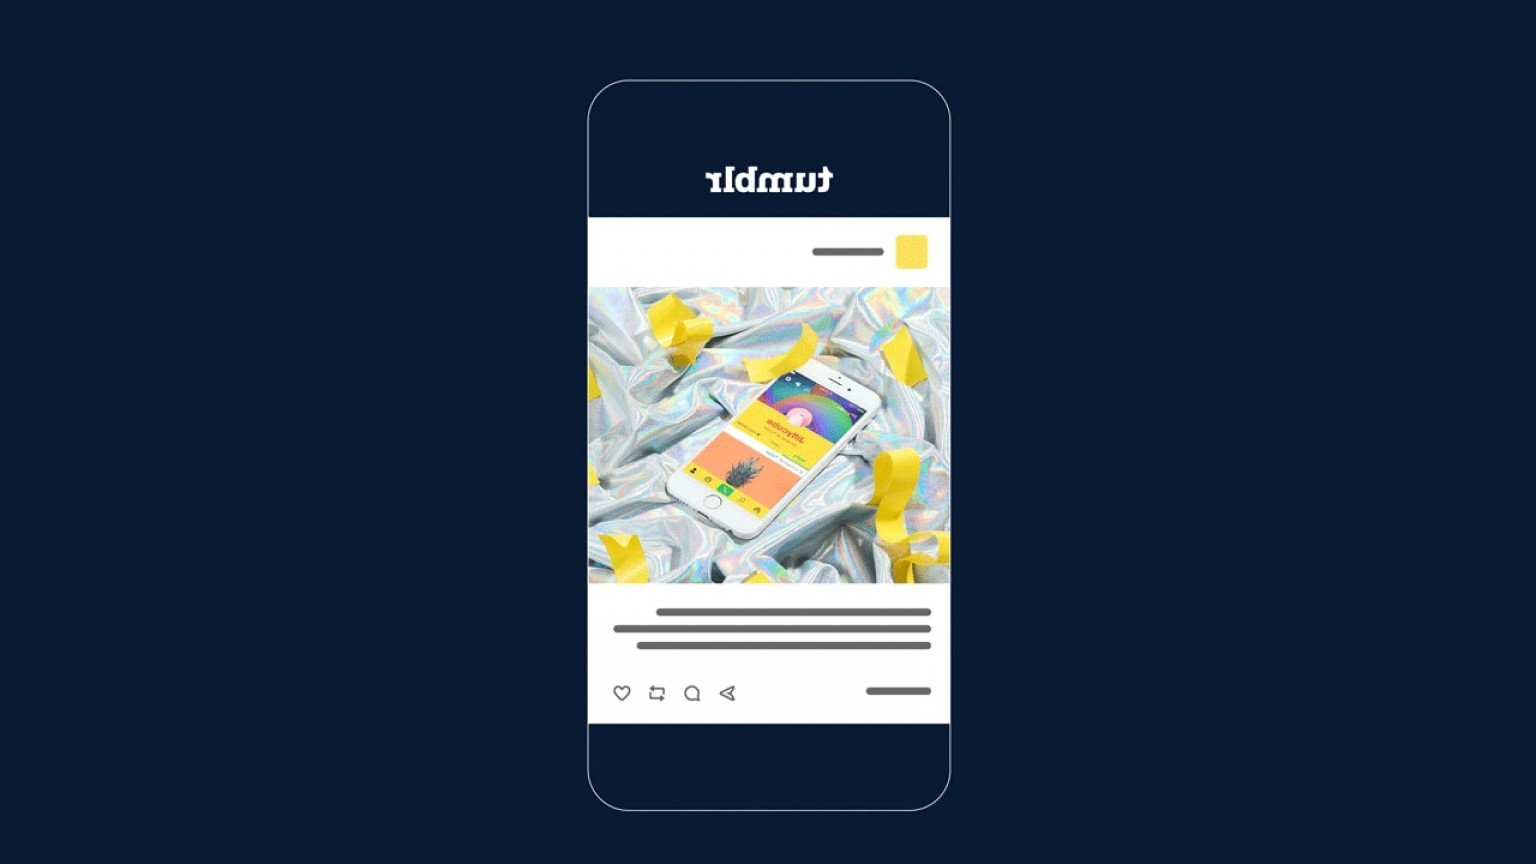 Tumblr App Icon Vector: How To Get Dark Mode On Tumblr